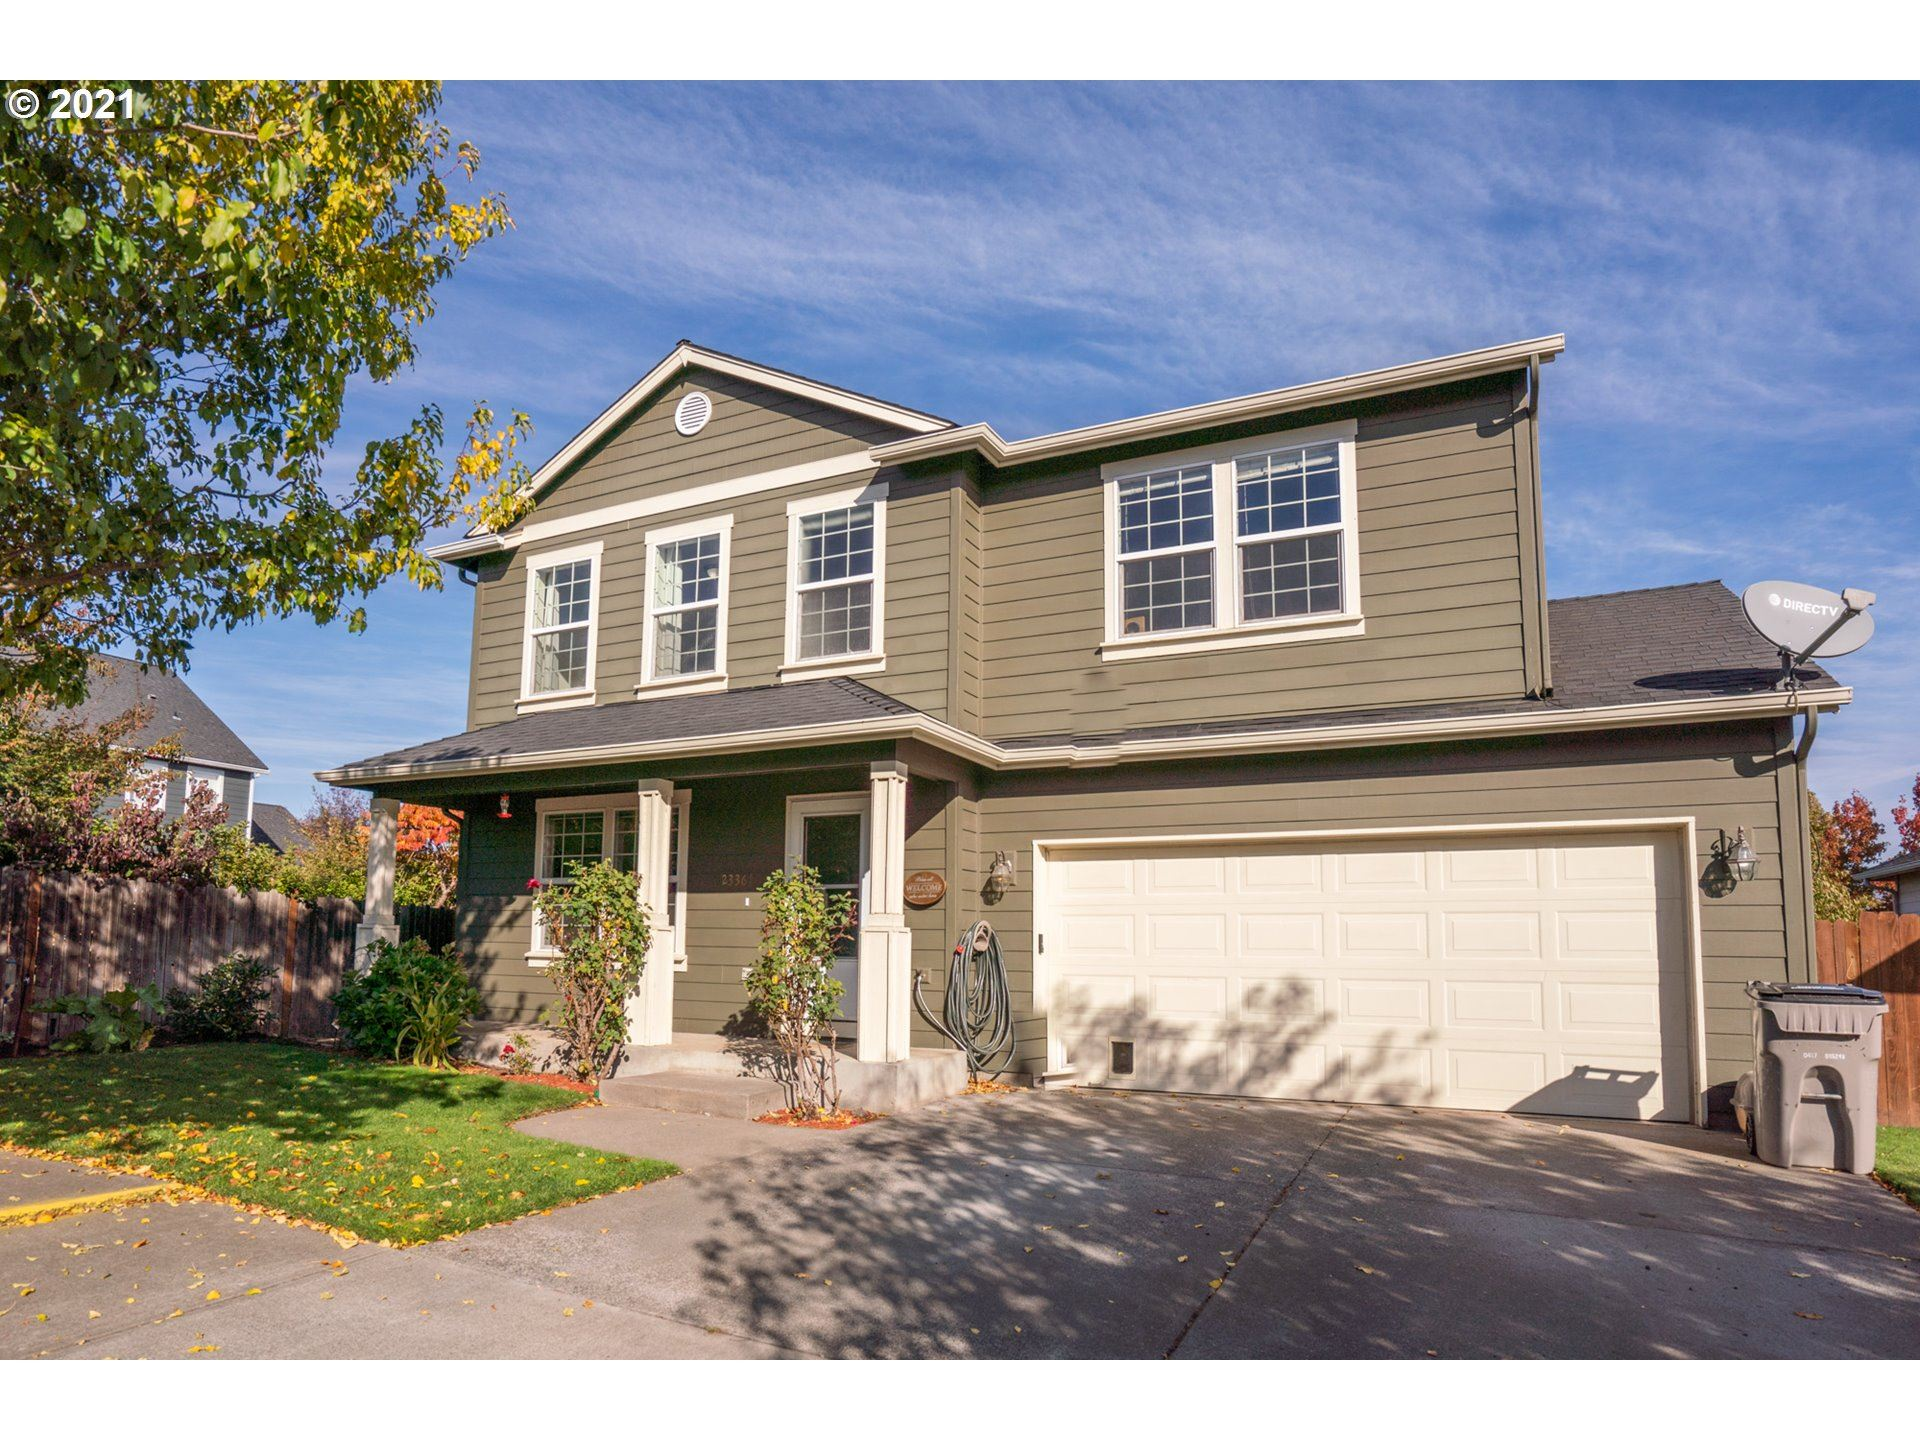 2336 FREEDOM DR, Hood River, OR 97031 - MLS#: 21334554